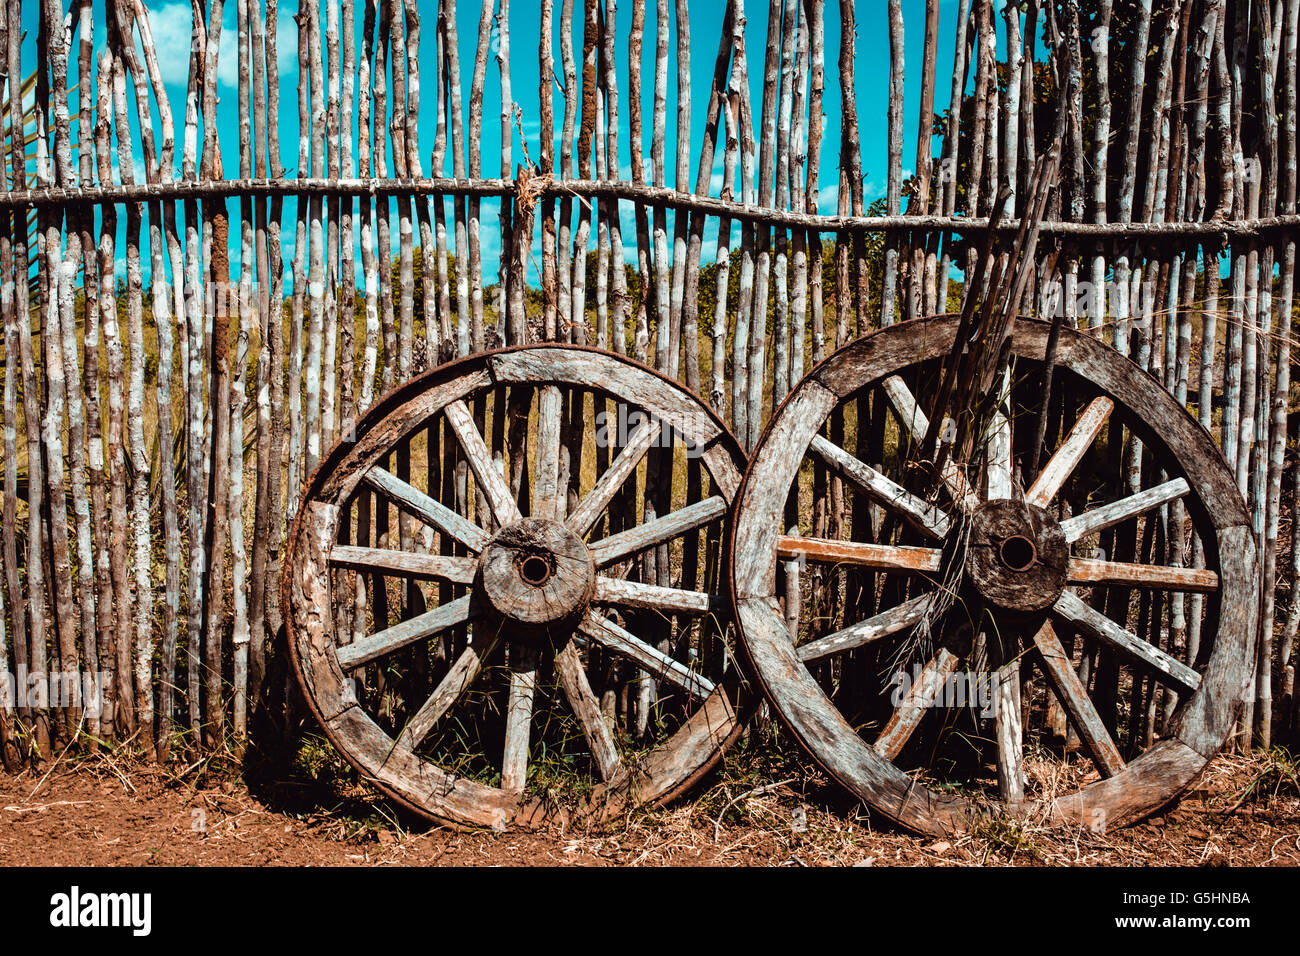 Two Old Wagon Wheels Stock Photos & Two Old Wagon Wheels